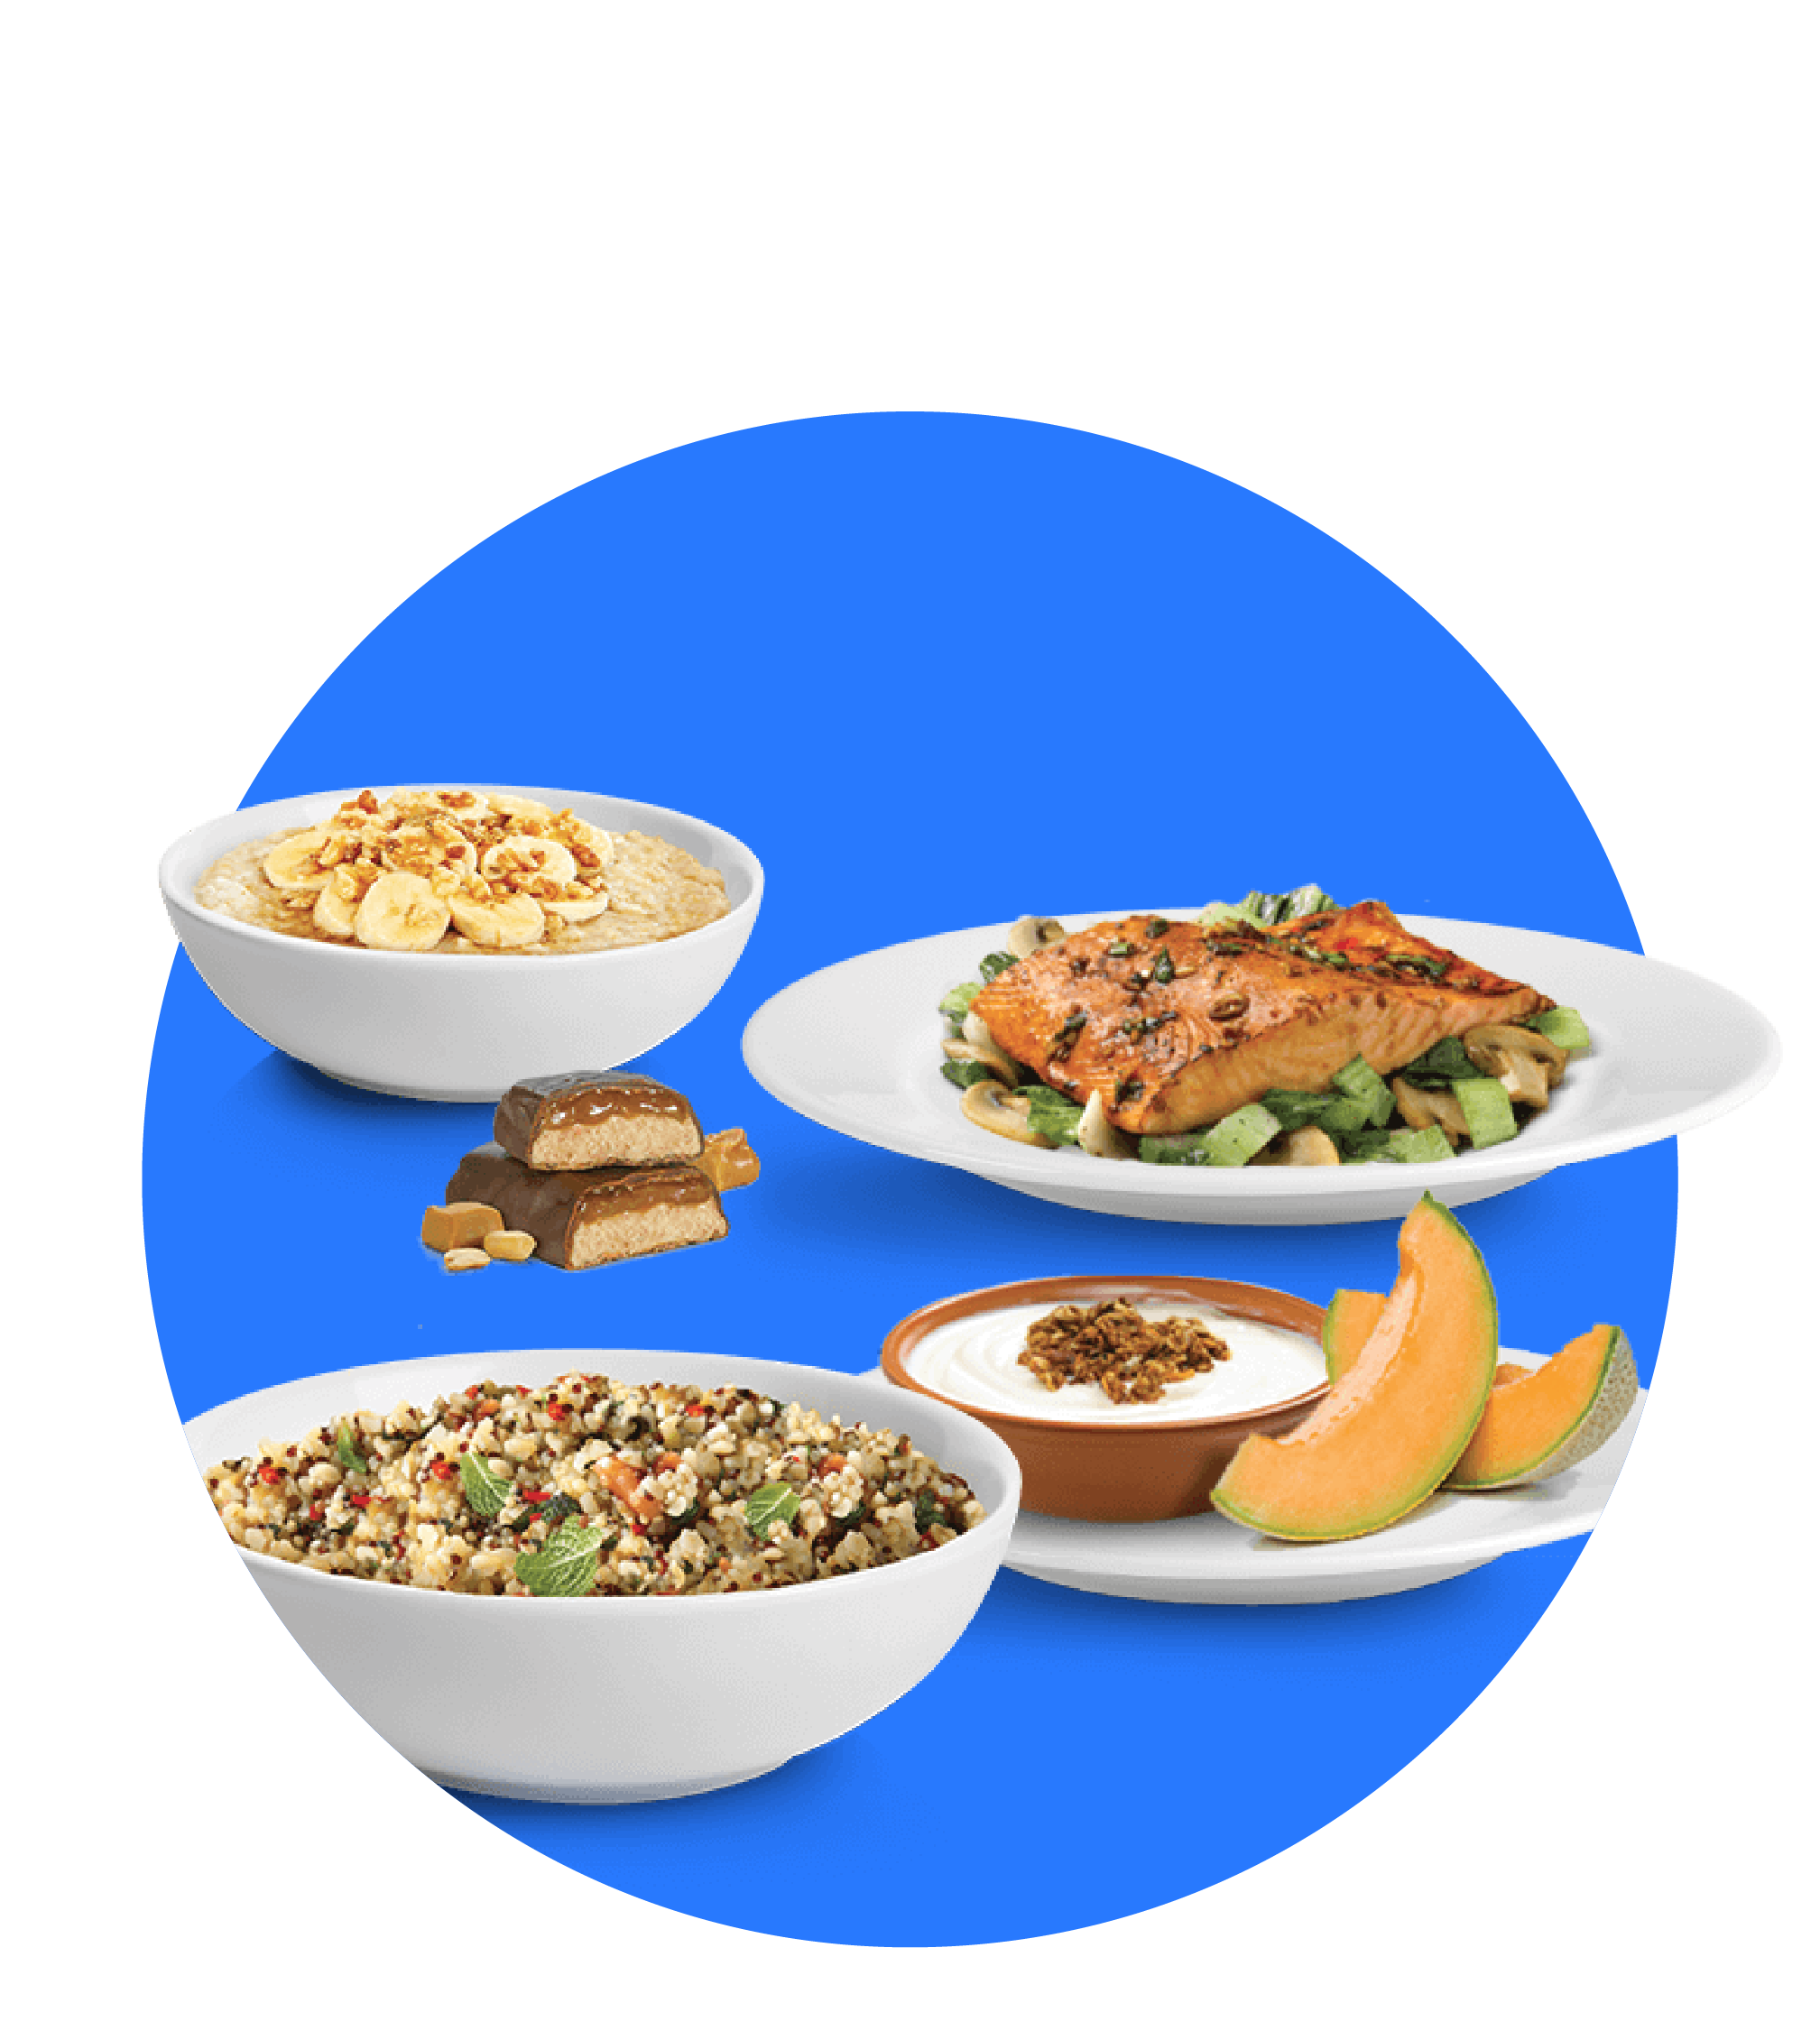 One bowl of cereal, a plate of chicken with vegetable, and a bowl of yogurt with a fruit